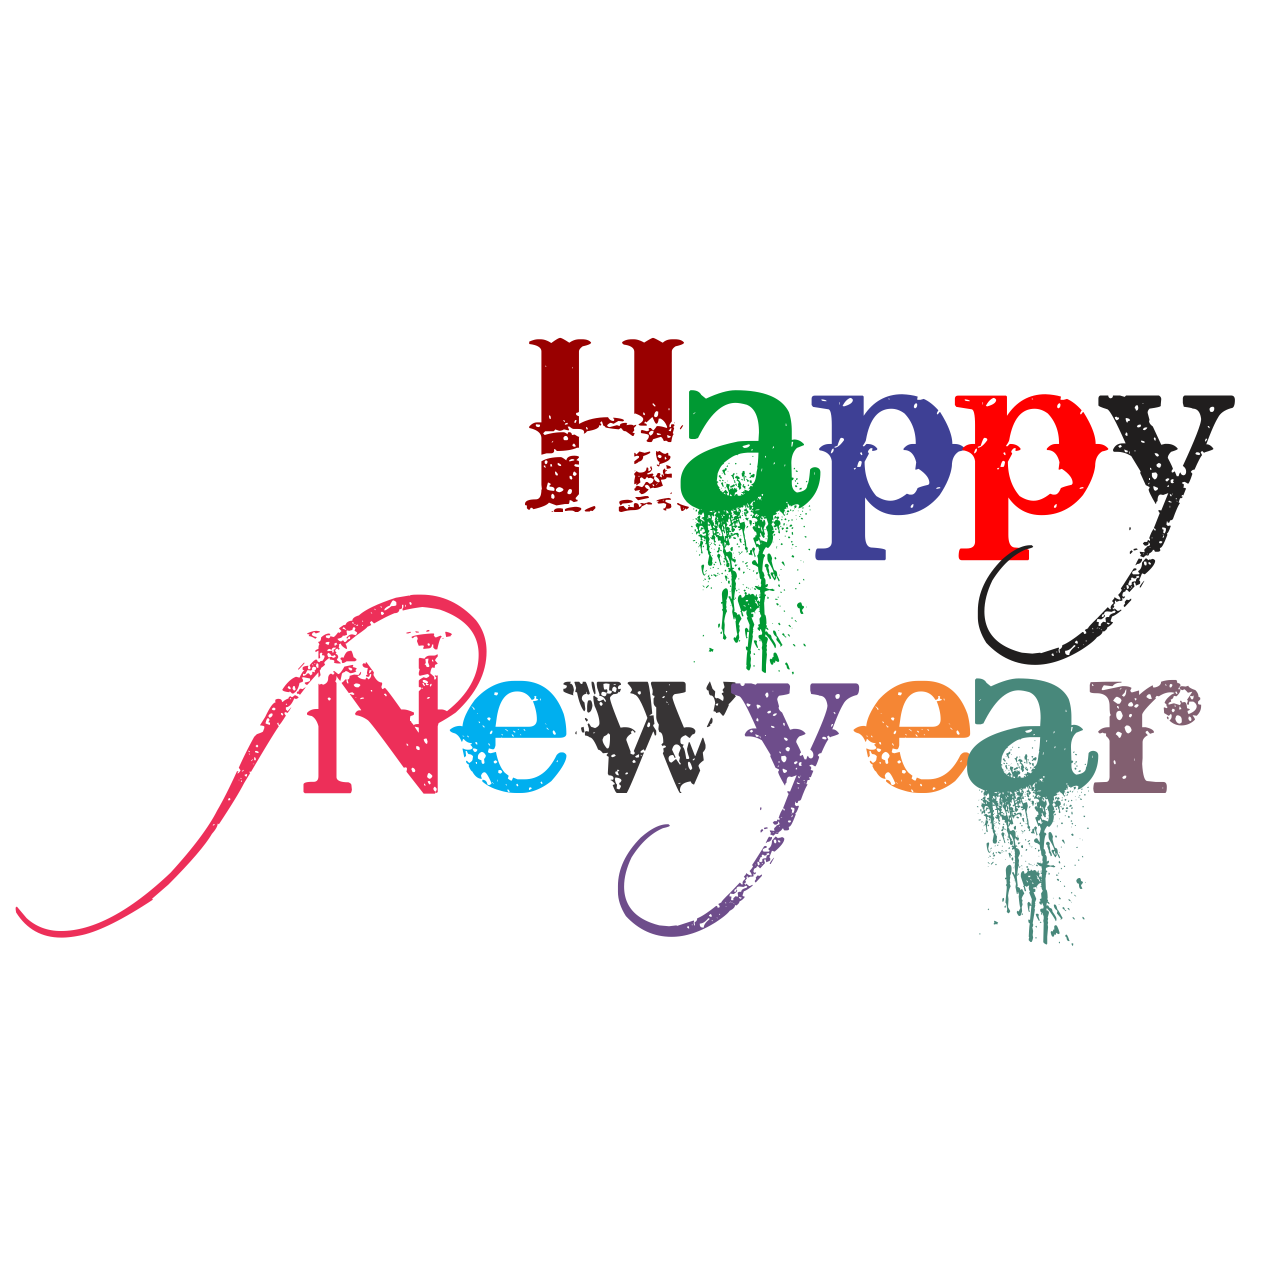 Download PNG image - Happy New Year Png Hd - Happy New Year PNG